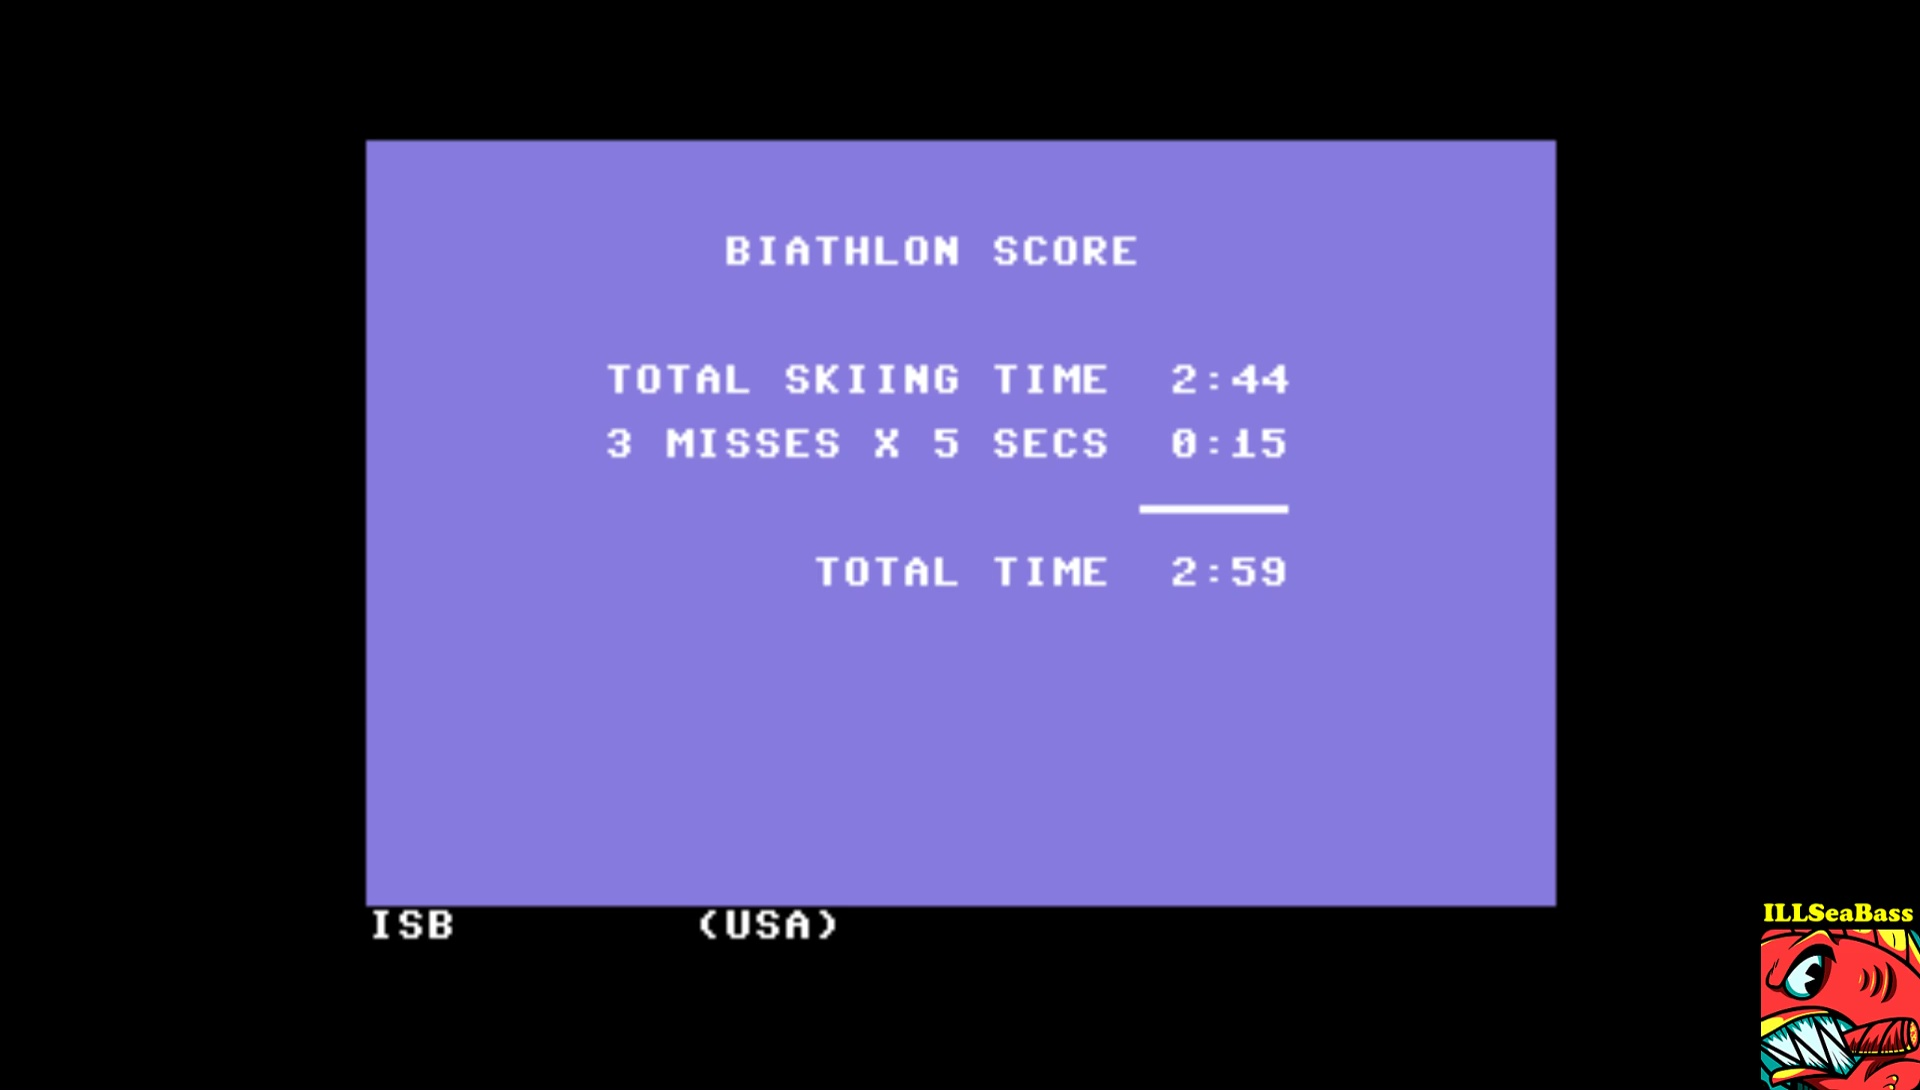 ILLSeaBass: Winter Games: Biathlon (Commodore 64 Emulated) 0:02:59 points on 2017-02-16 19:49:18